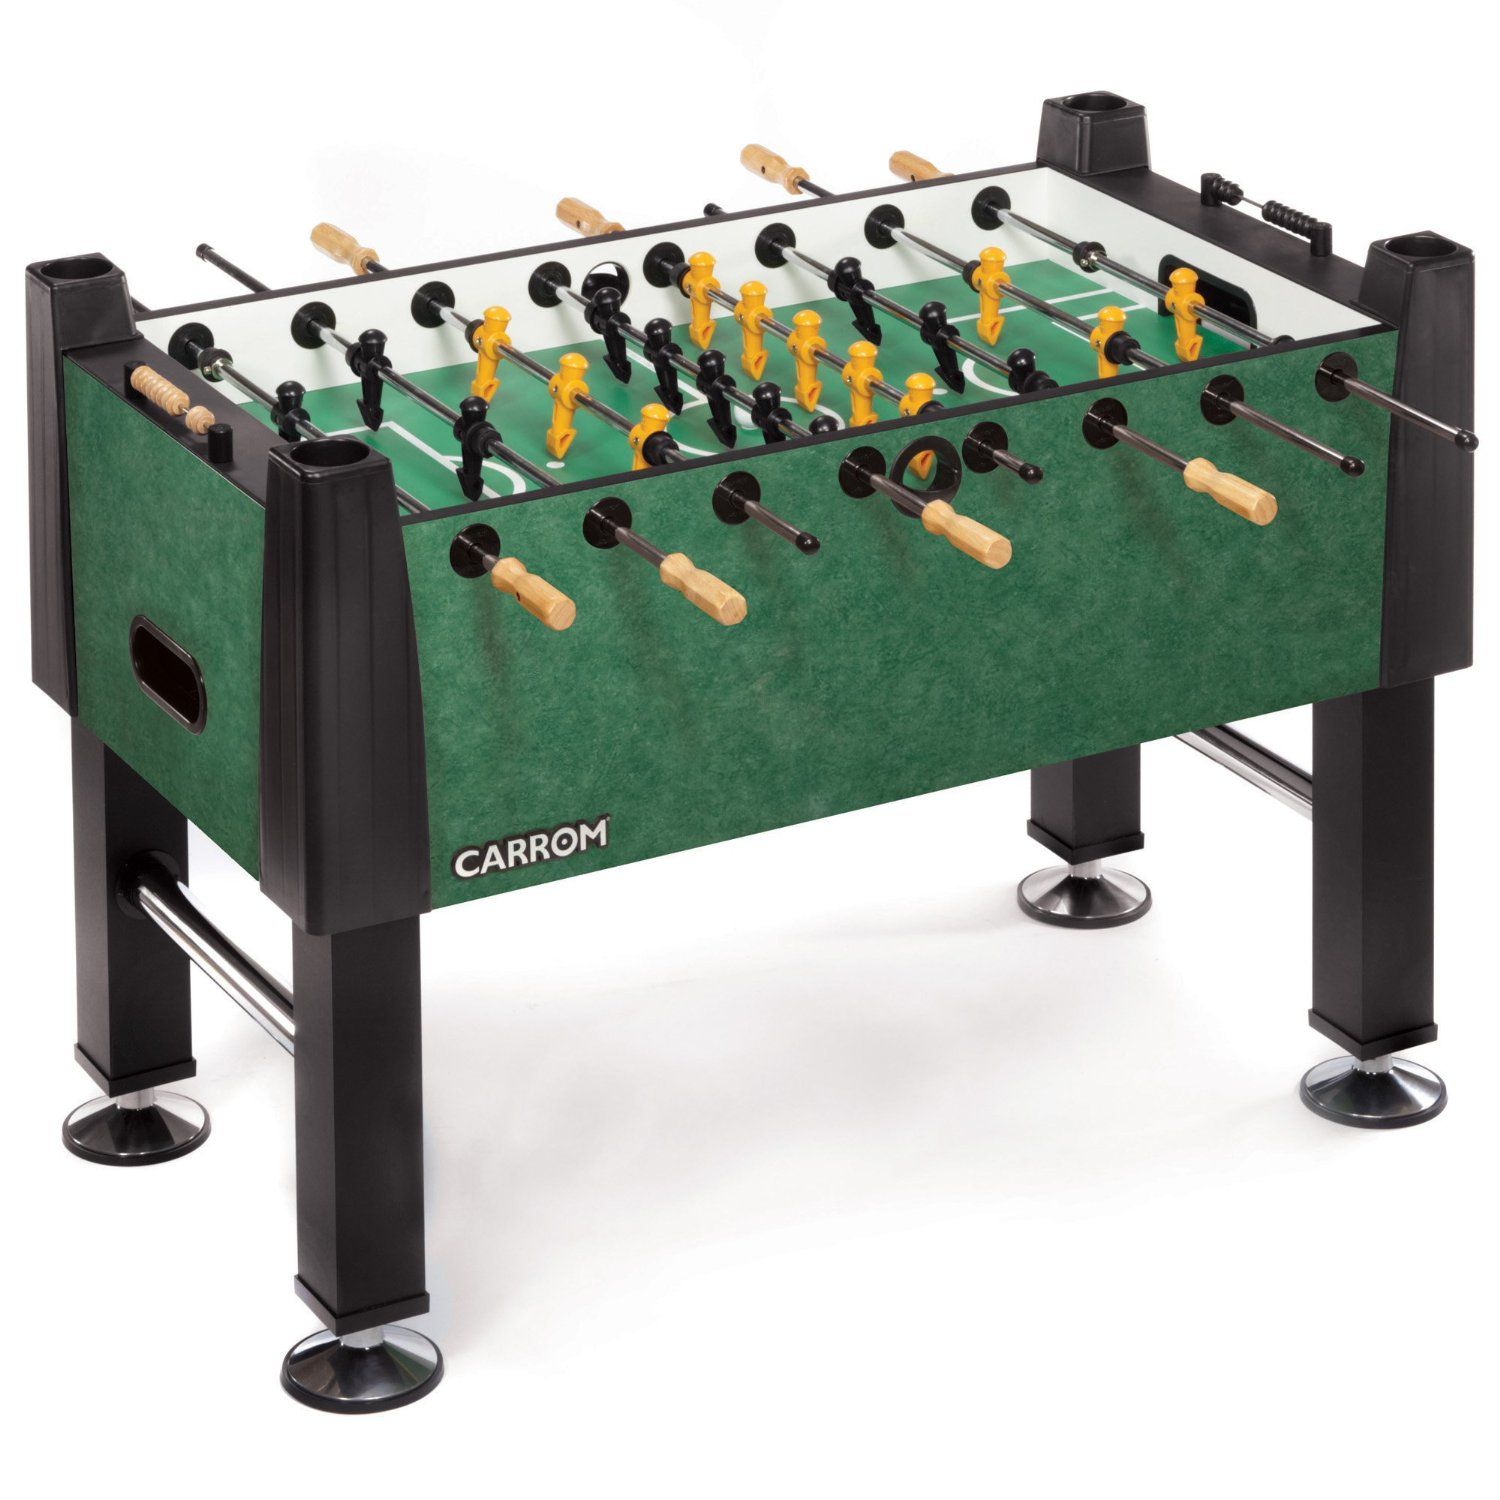 Carrom-Signature-Foosball-table